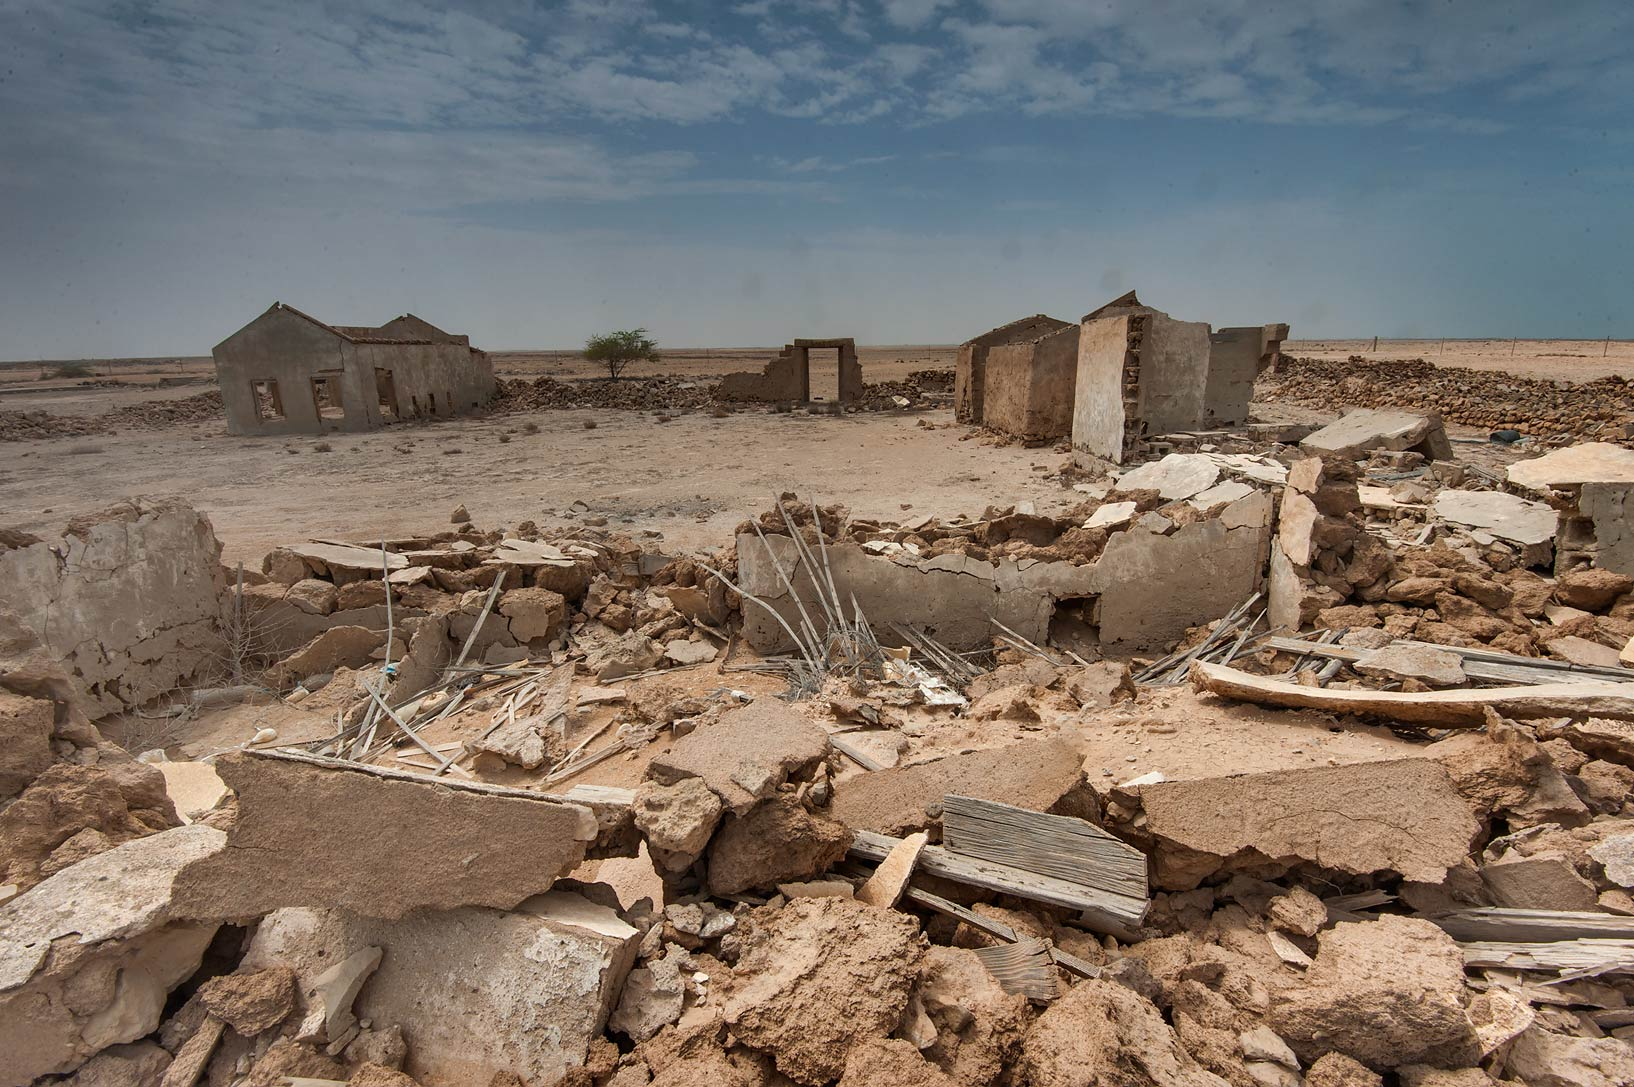 Ruined houses in a village of Al Areesh (Arish). Northern Qatar